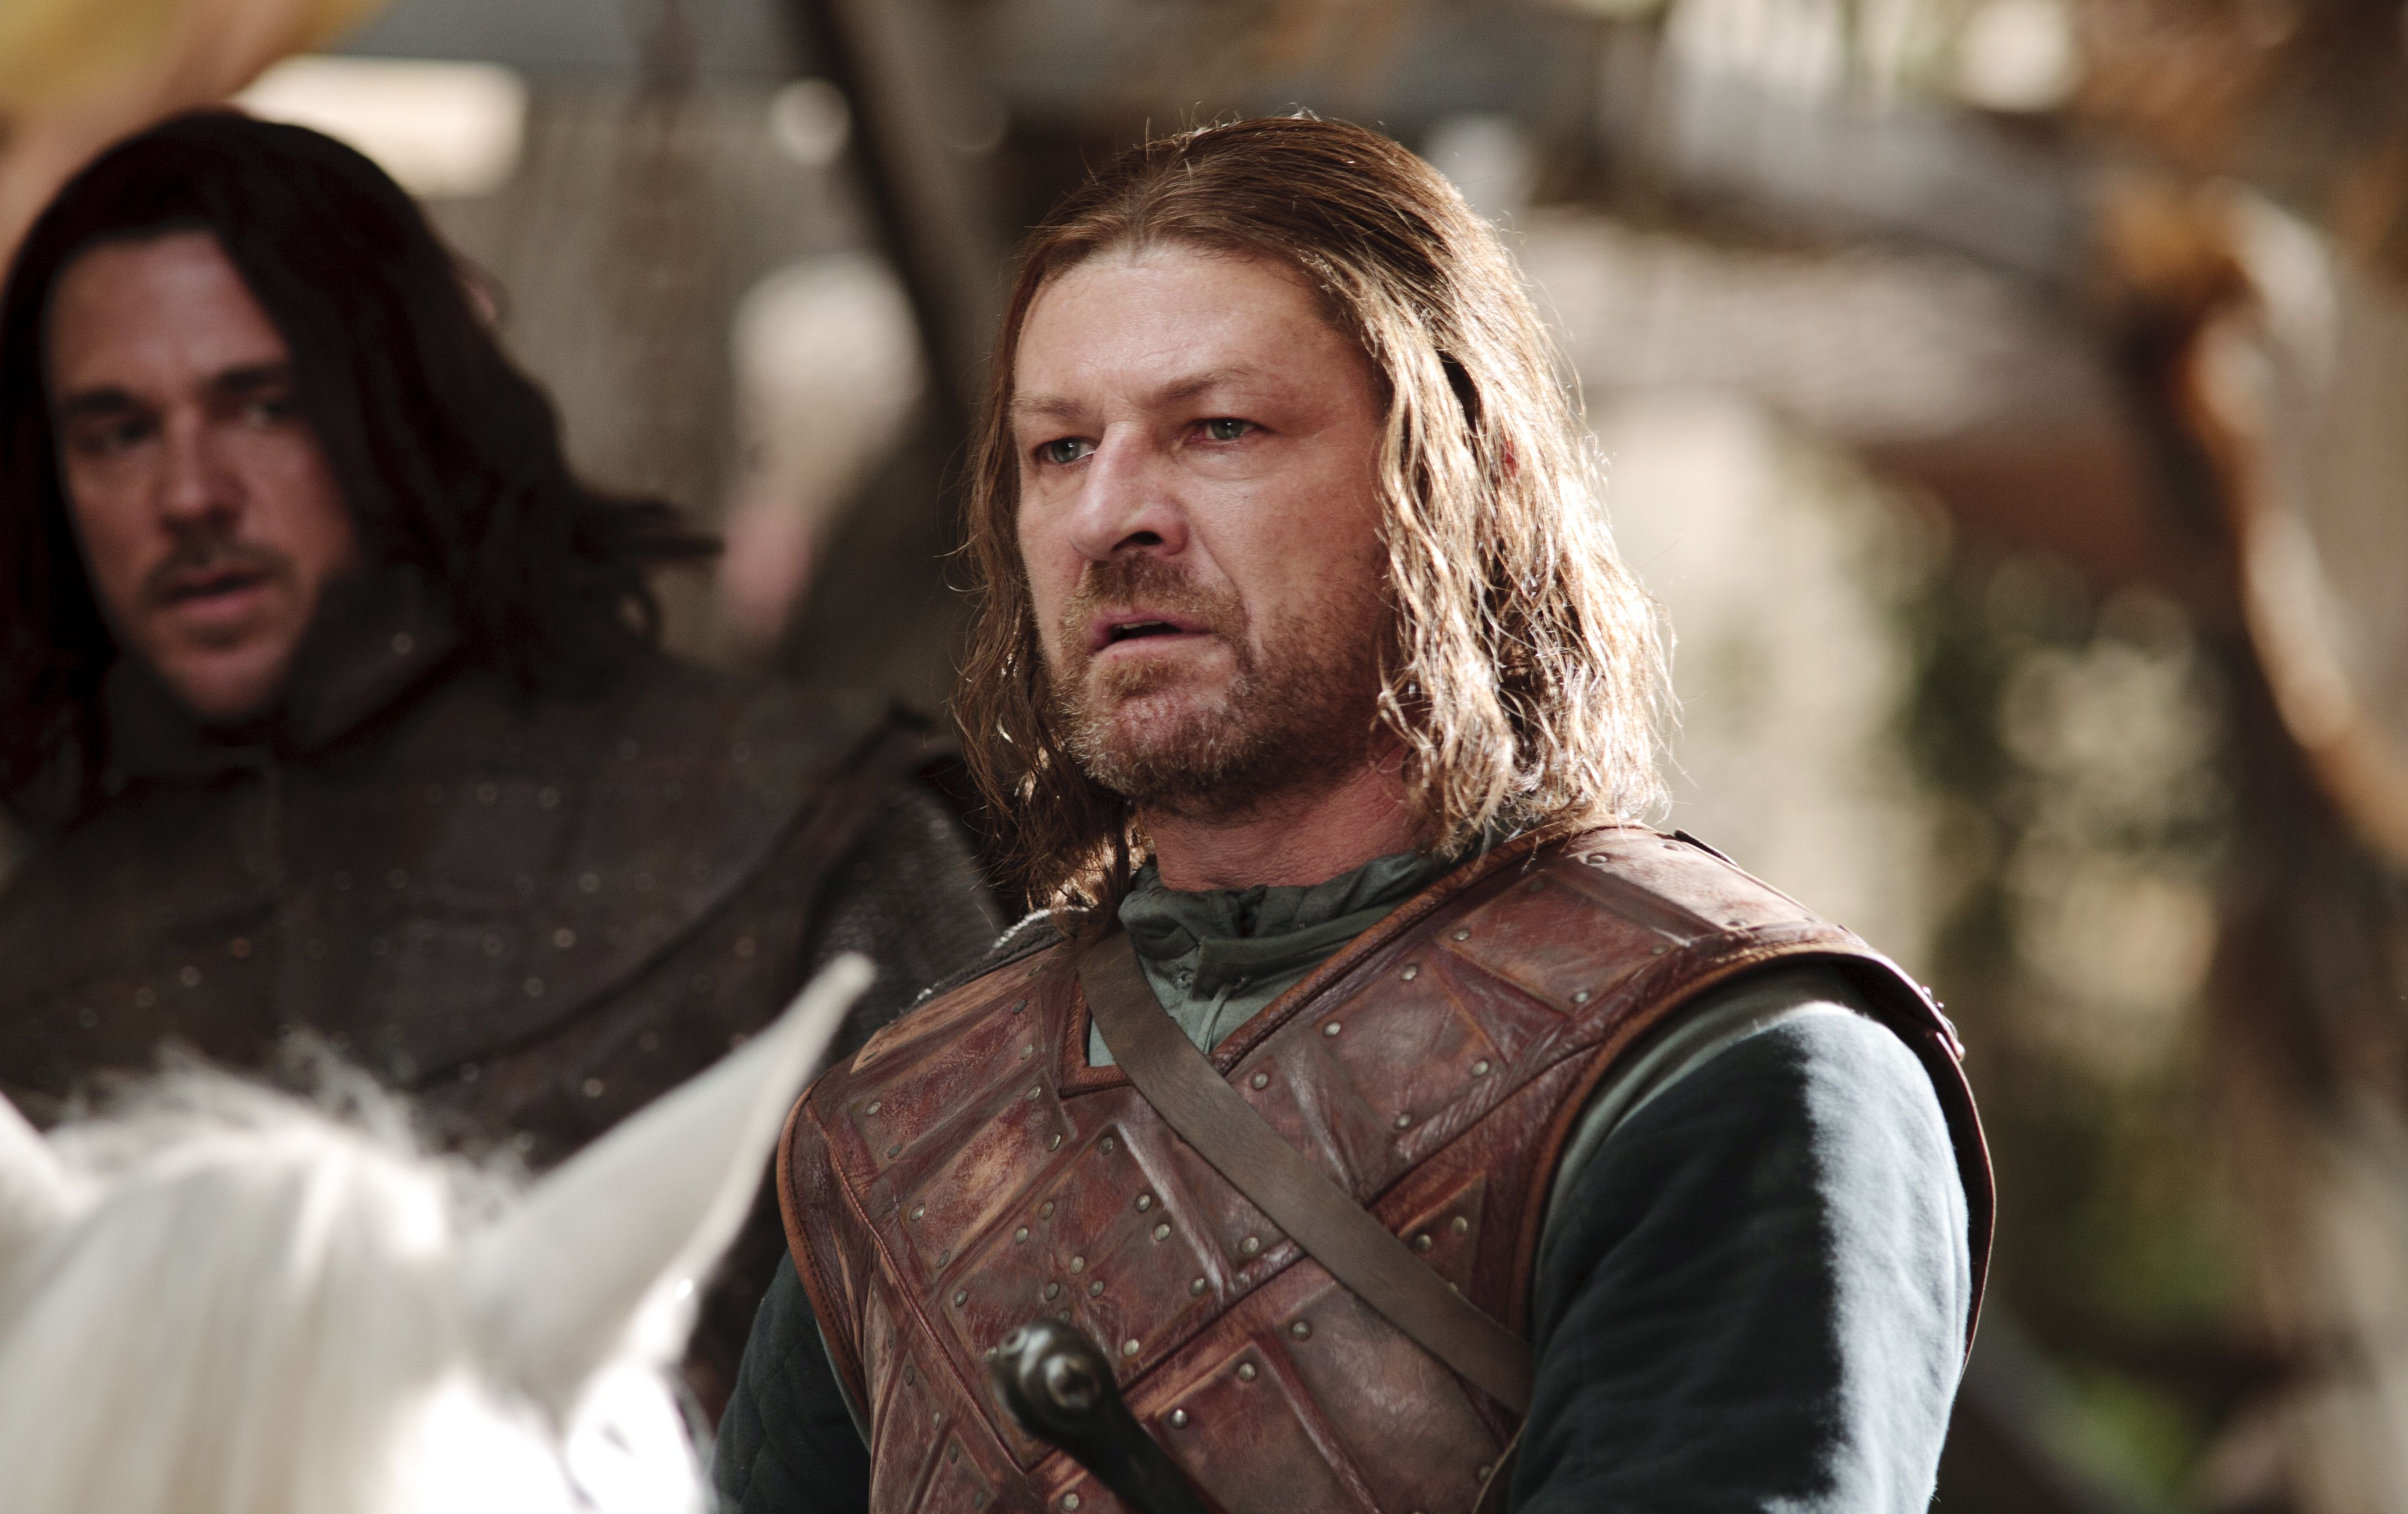 13 times Game of Thrones foreshadowed major events